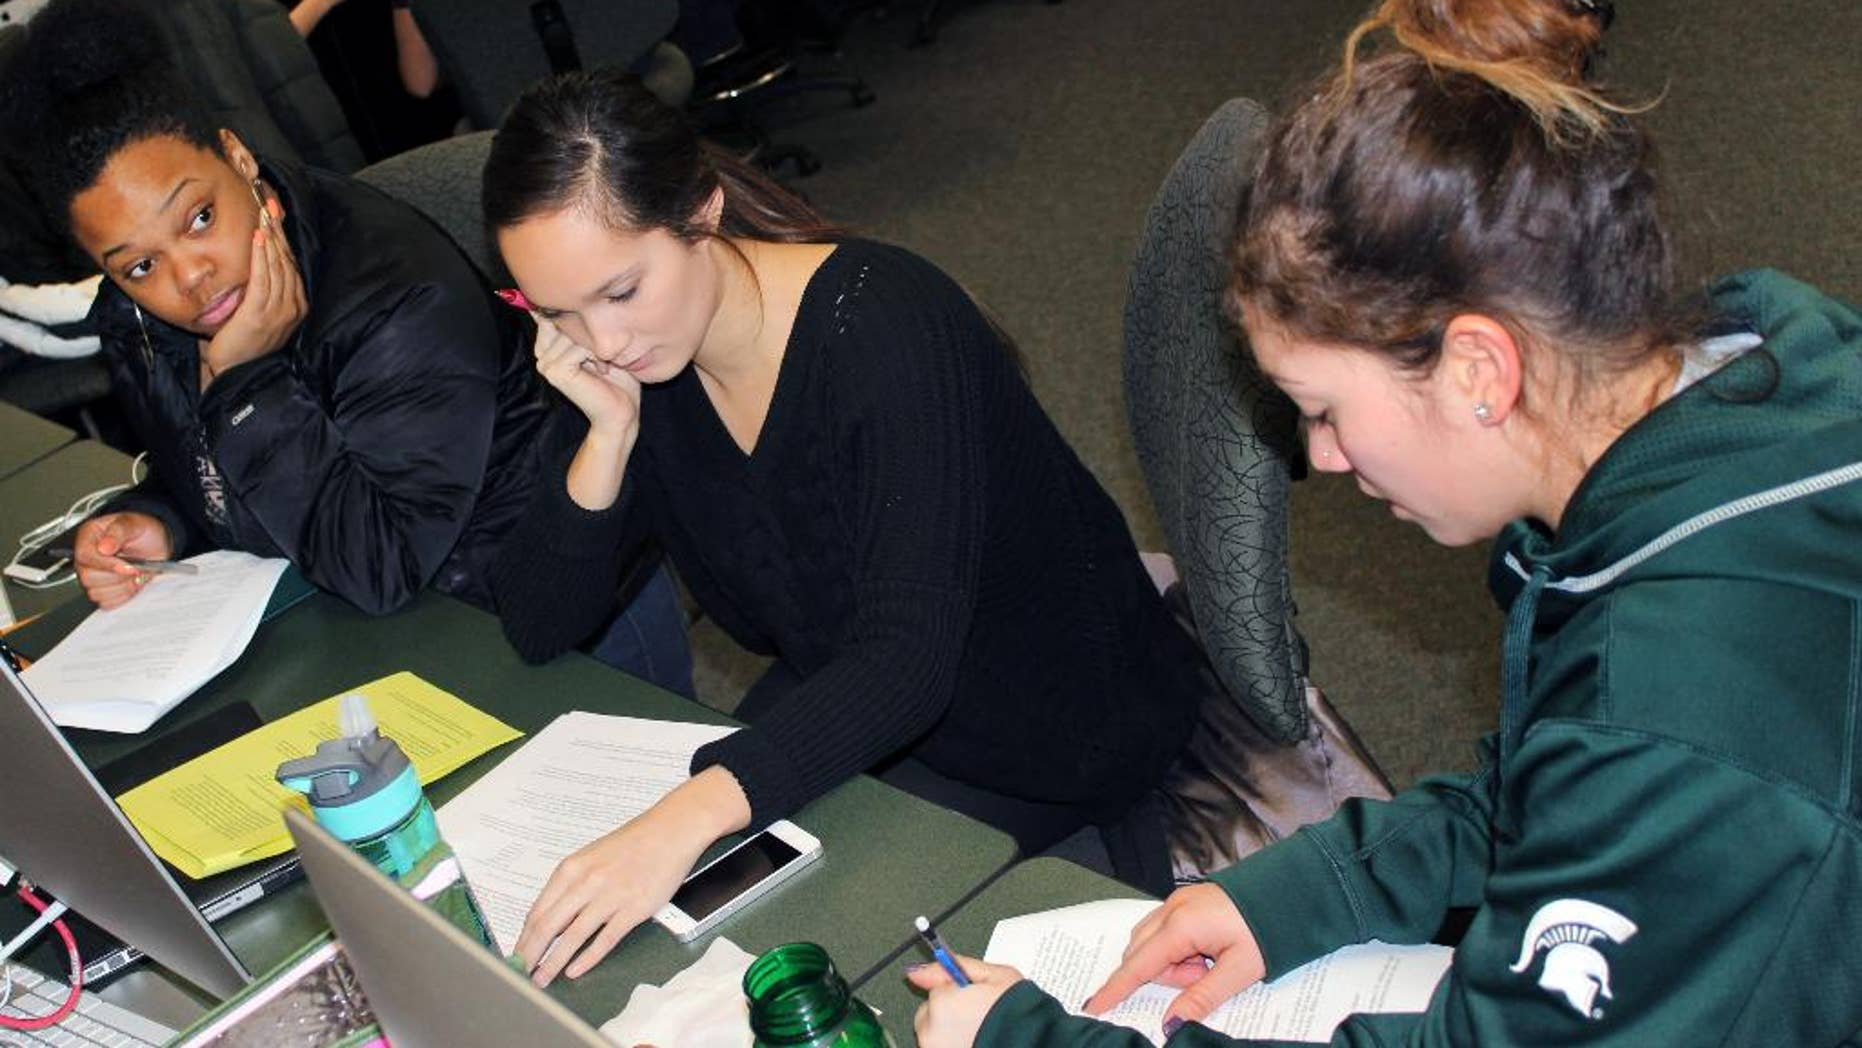 """In this March 1, 2015 photo released by Joe Grimm, Michigan State University students Tiara Jones, from left, Madeline Carino and Lia Kamana work on a new book """"100 Questions and Answers About Veterans"""" in East Lansing, Mich. The new book, researched and written by a Michigan State journalism class with assistance from former servicemen and women, is aimed at clearing up myths and misunderstandings held by some civilians.  (AP Photo/Joe Grimm)"""